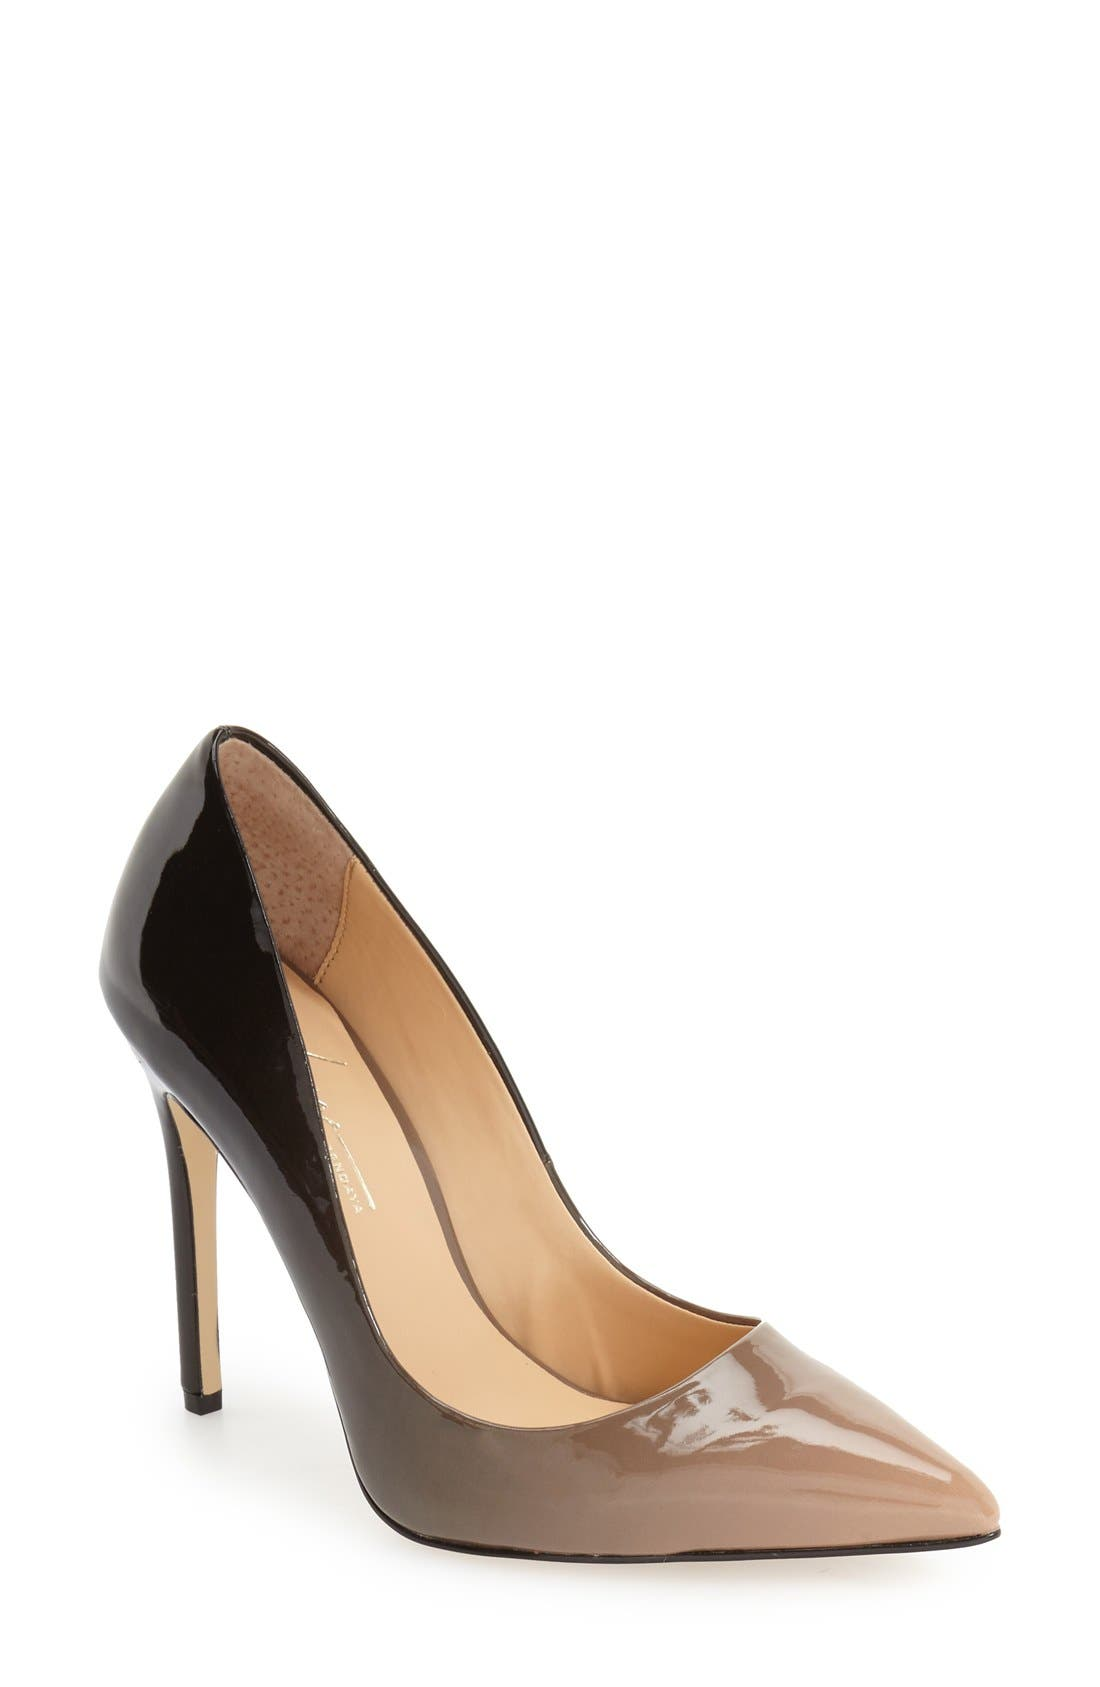 by Zendaya 'Atmore II' Pointy Toe Pump,                         Main,                         color, 250